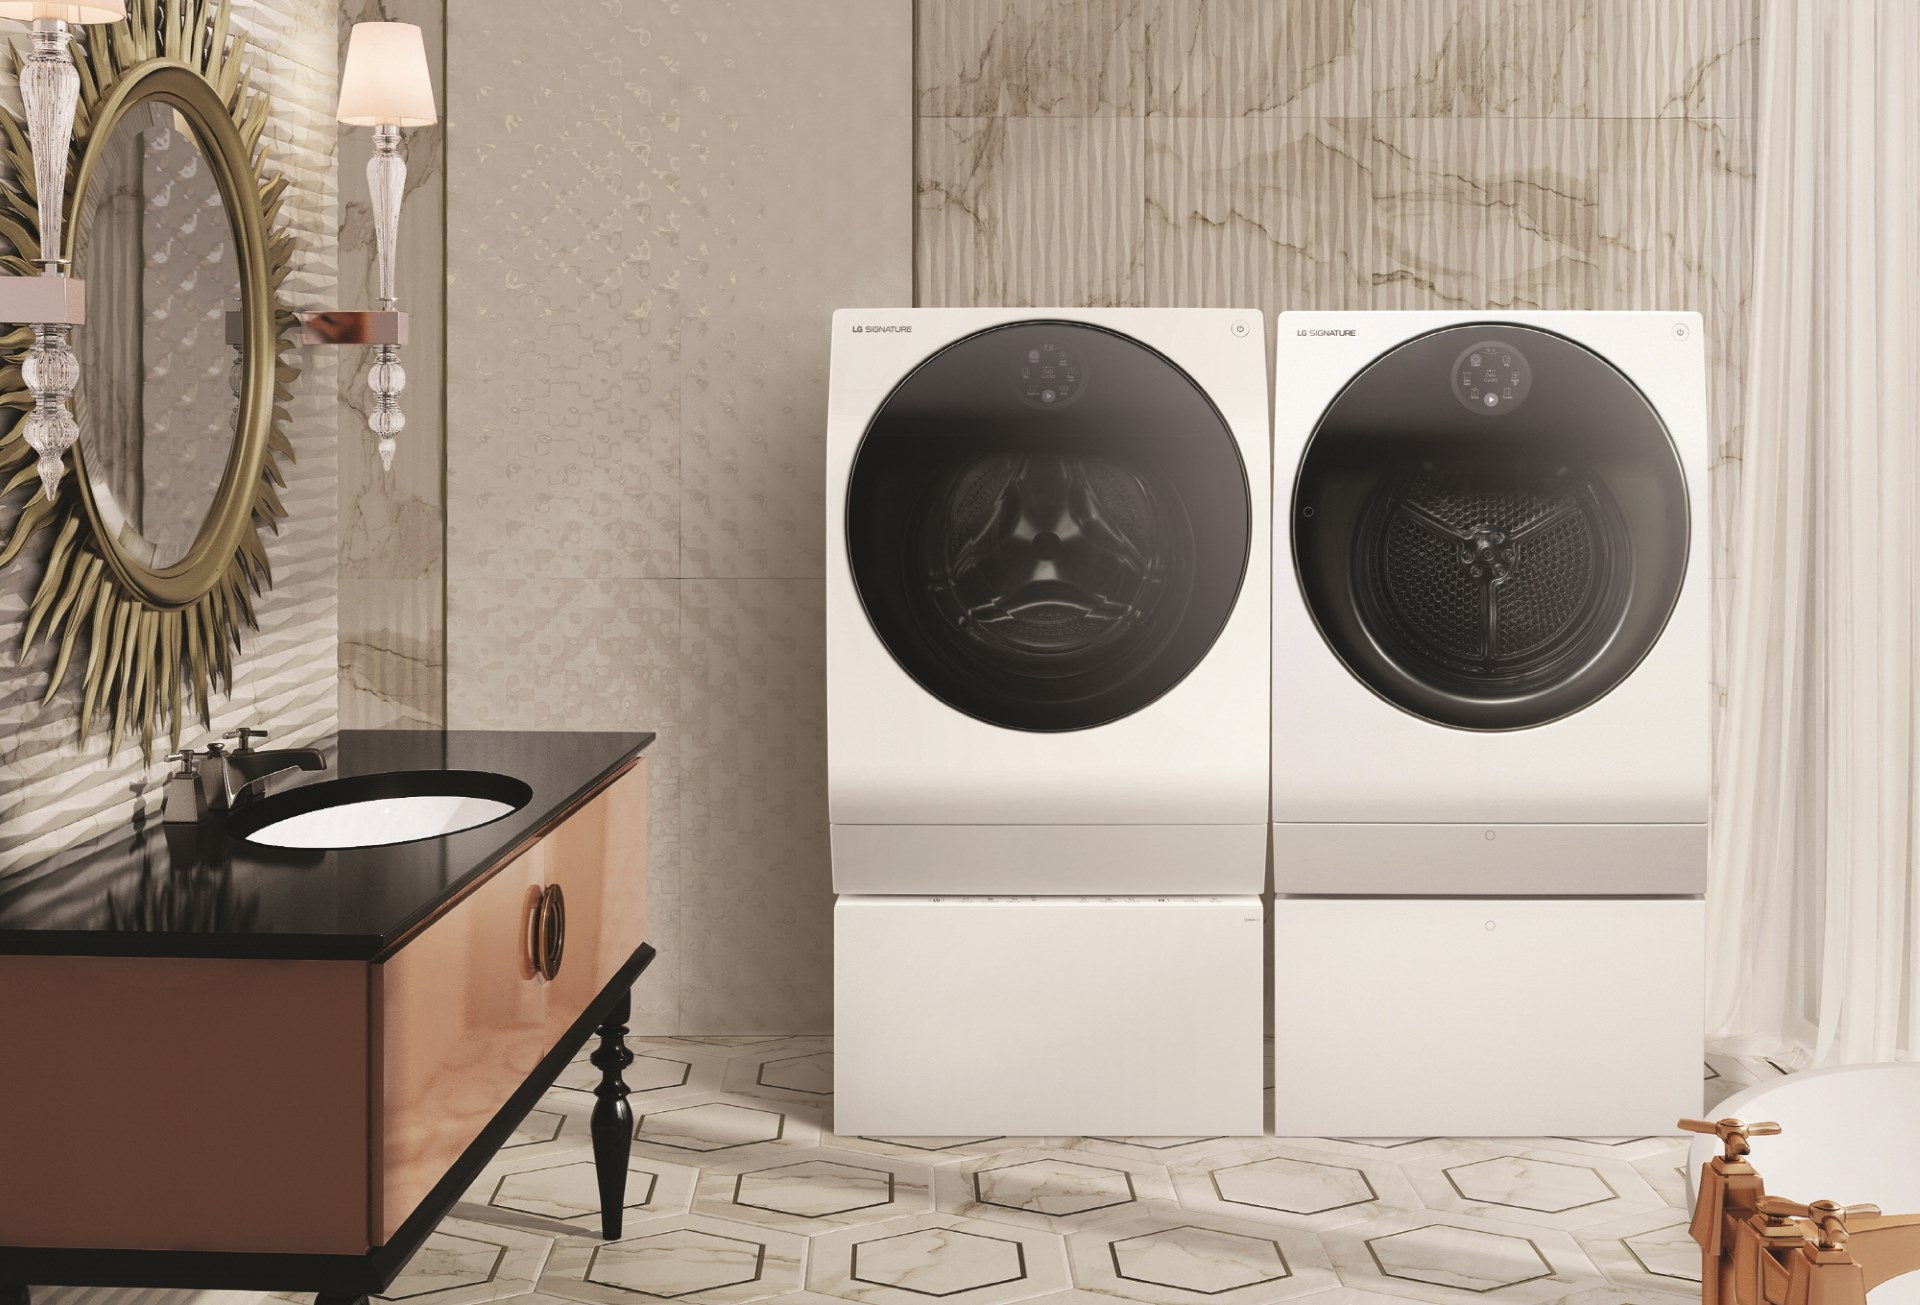 2018 LG SIGNATURE Washer & Dryer